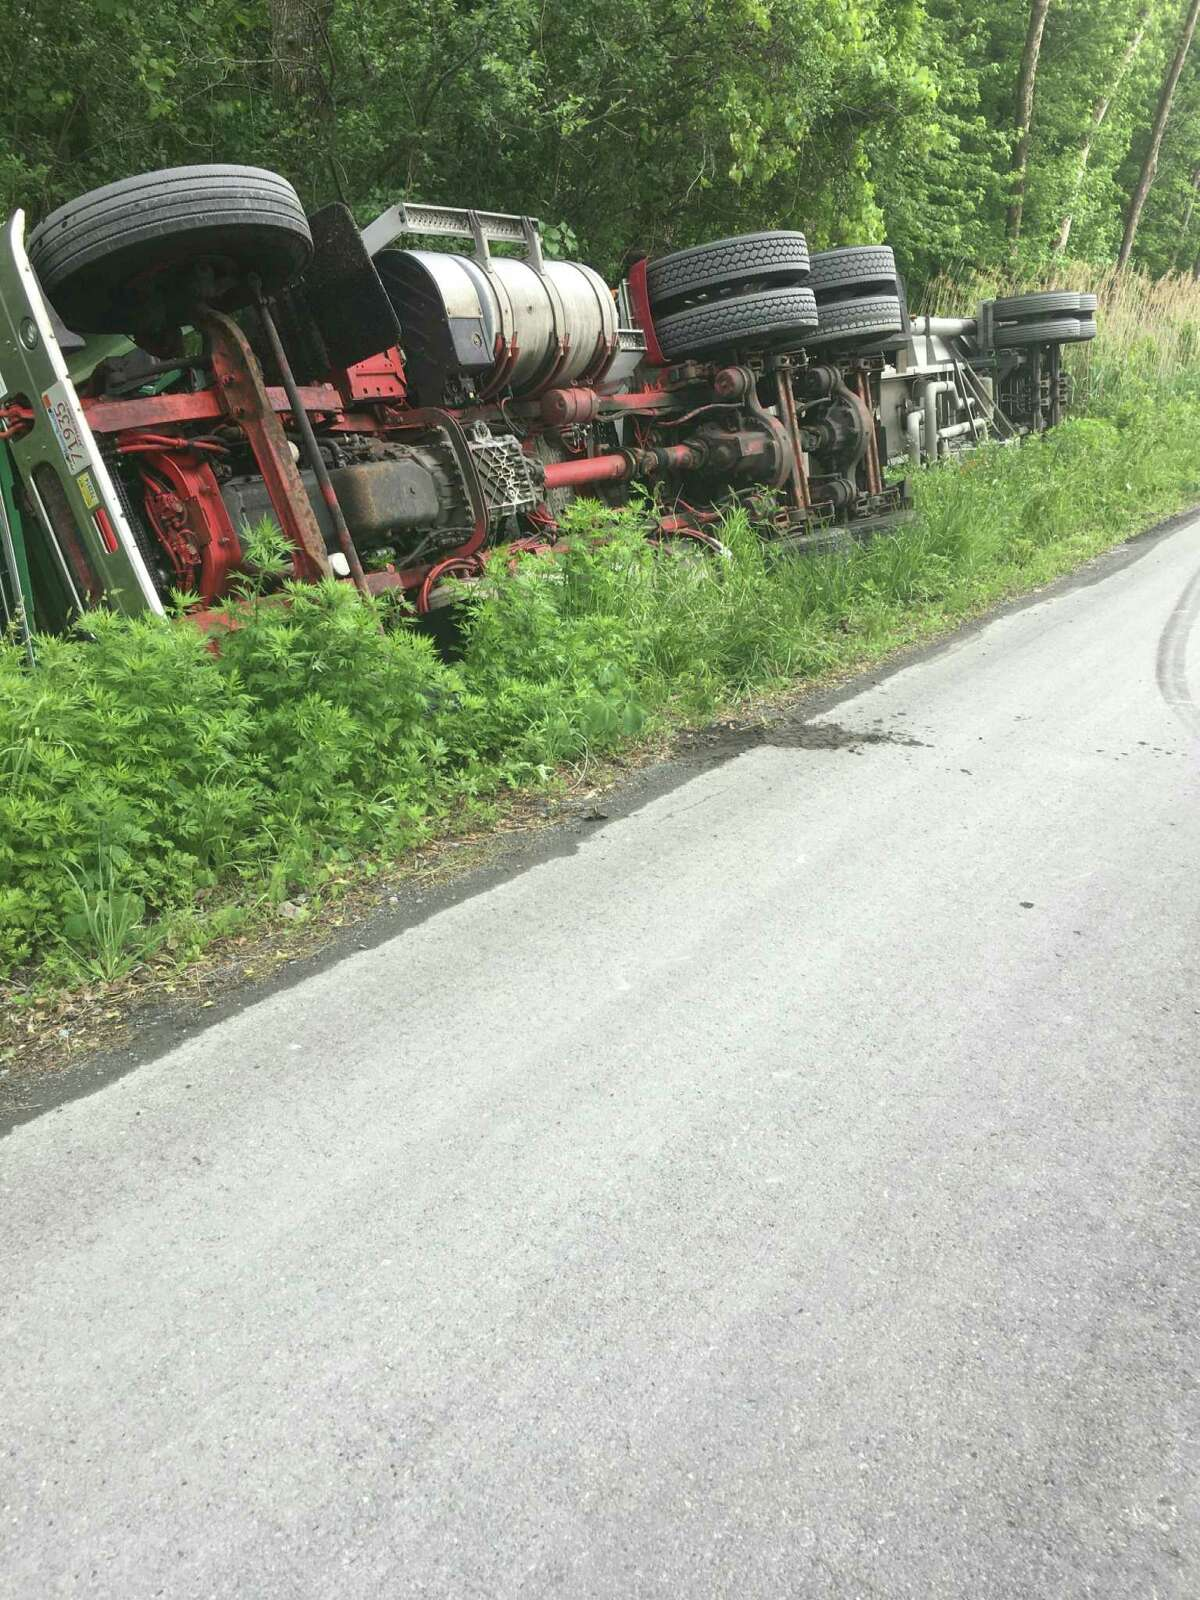 Tanker truck hauling jet fuel rolled over on American Oil Road at the Port of Rensselaer in East Greenbush at about 2 p.m. Monday May 31,2021.